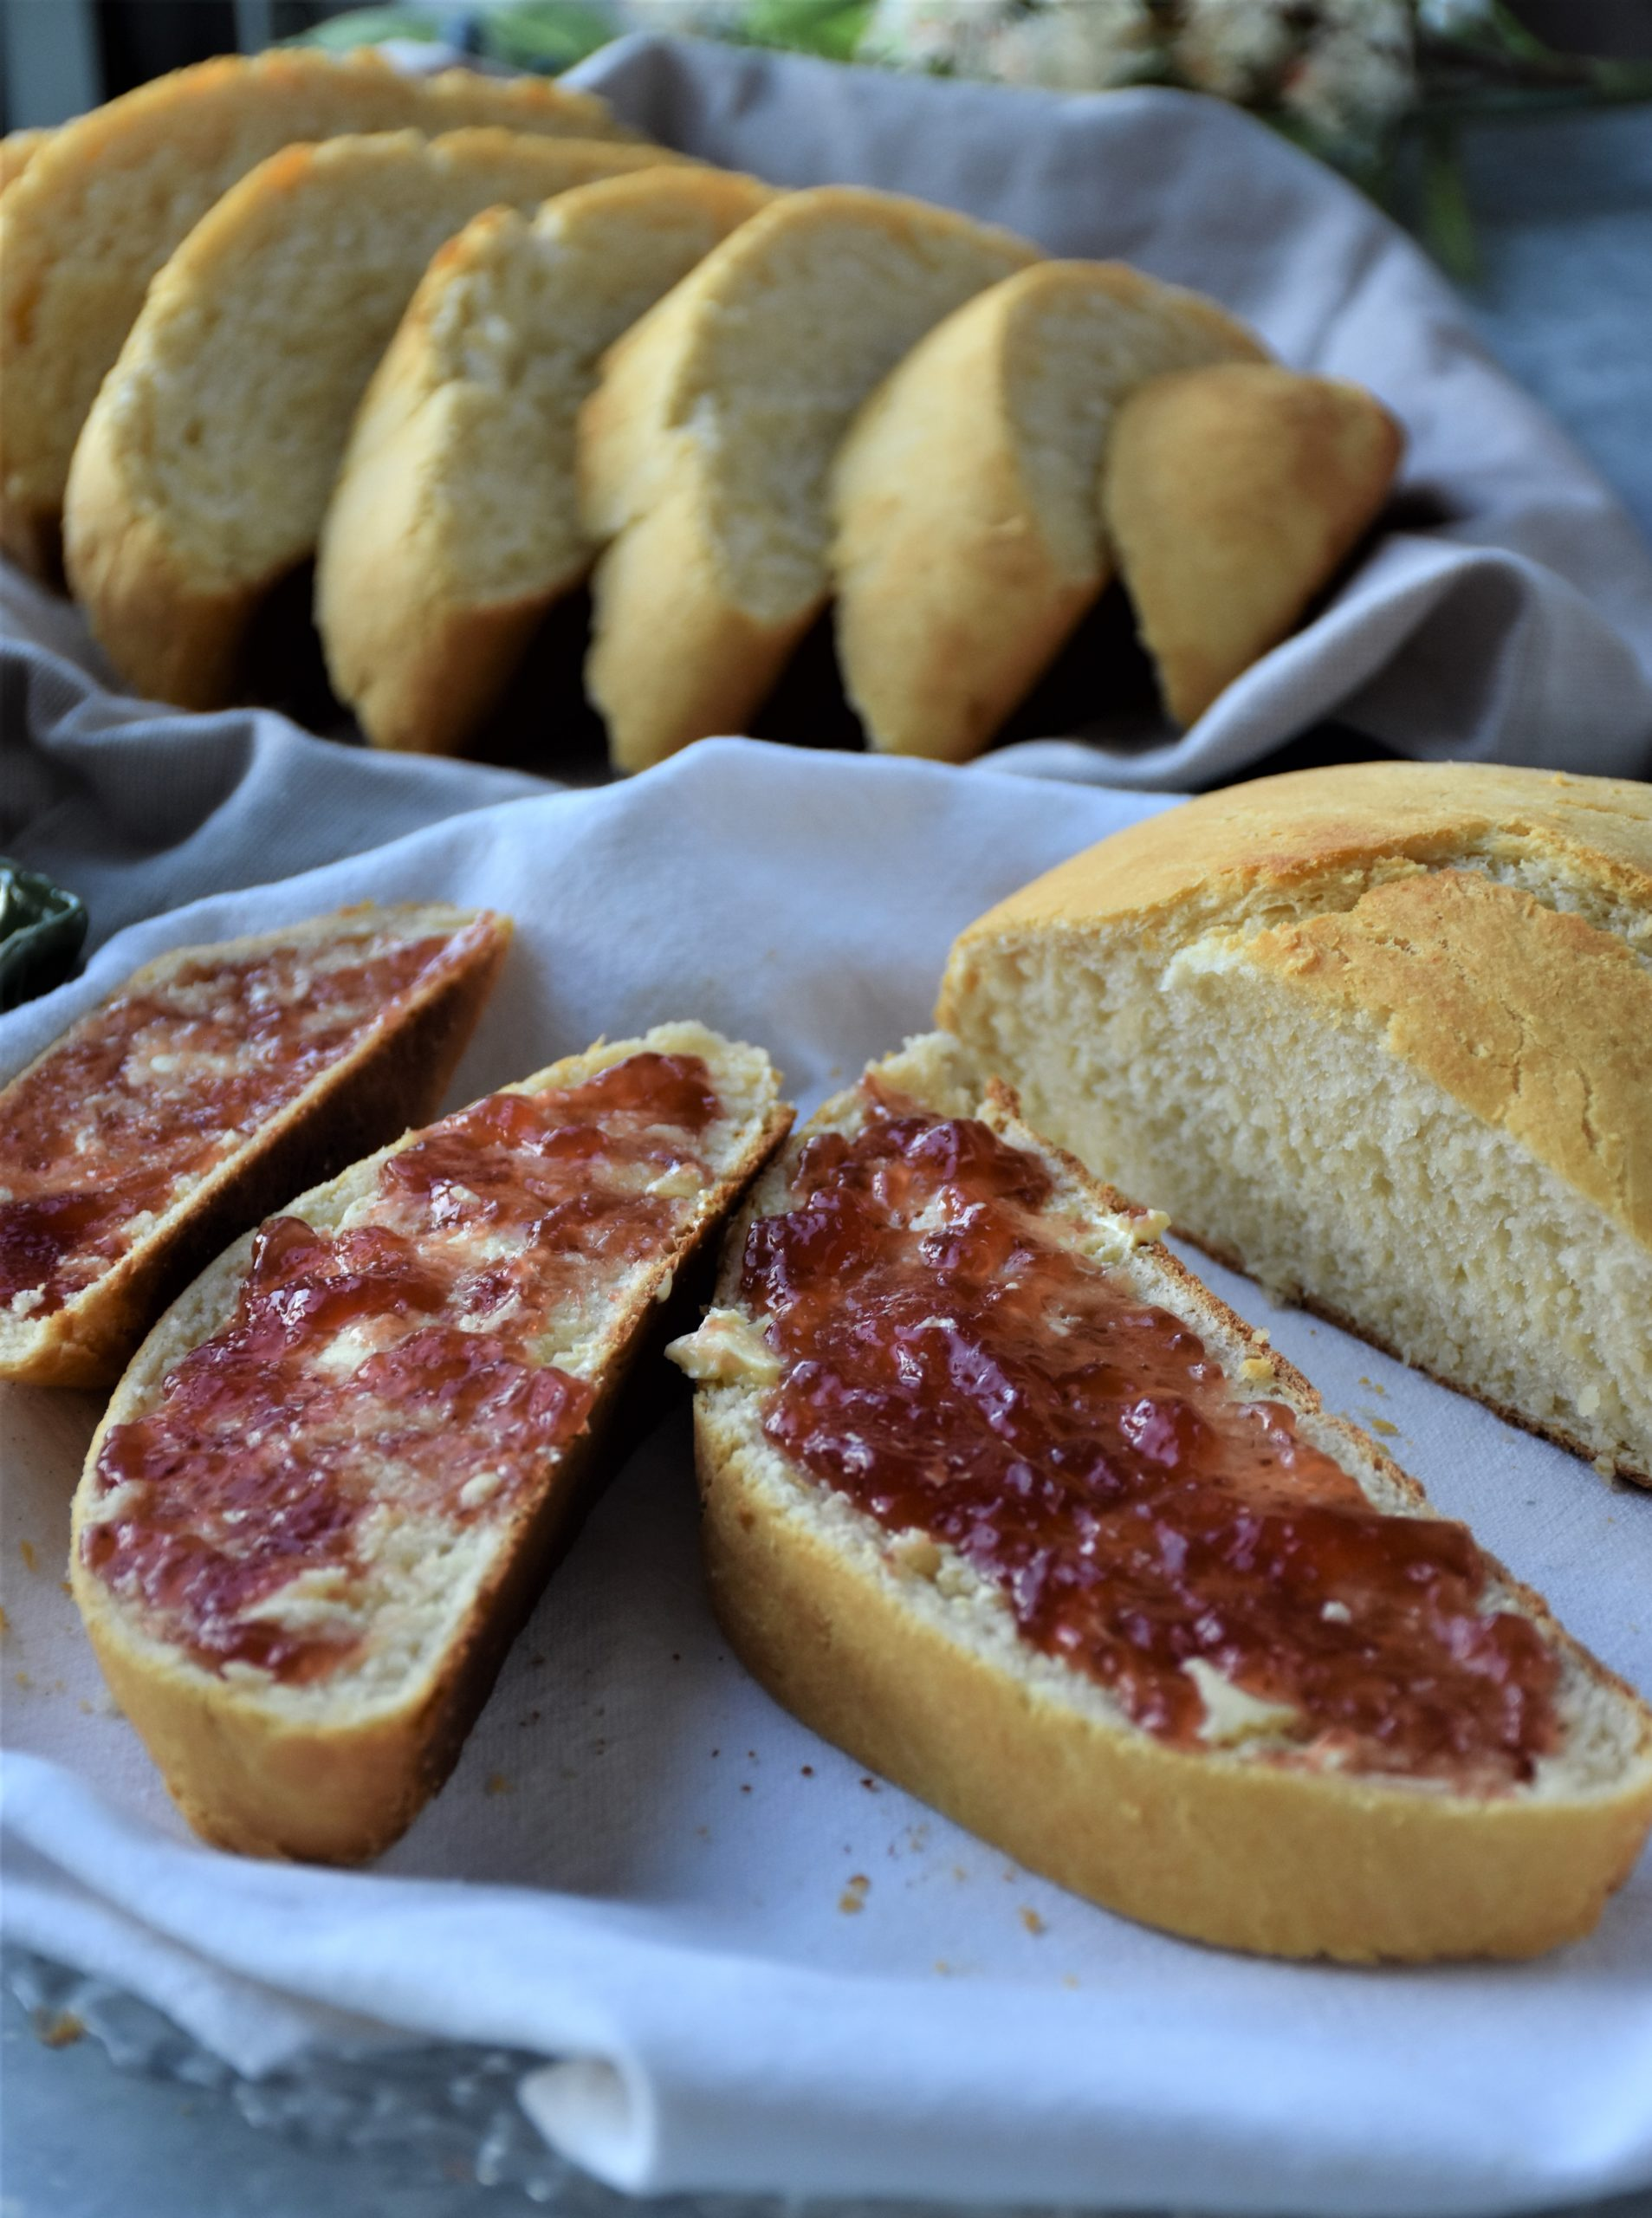 homemade bread slices with jam